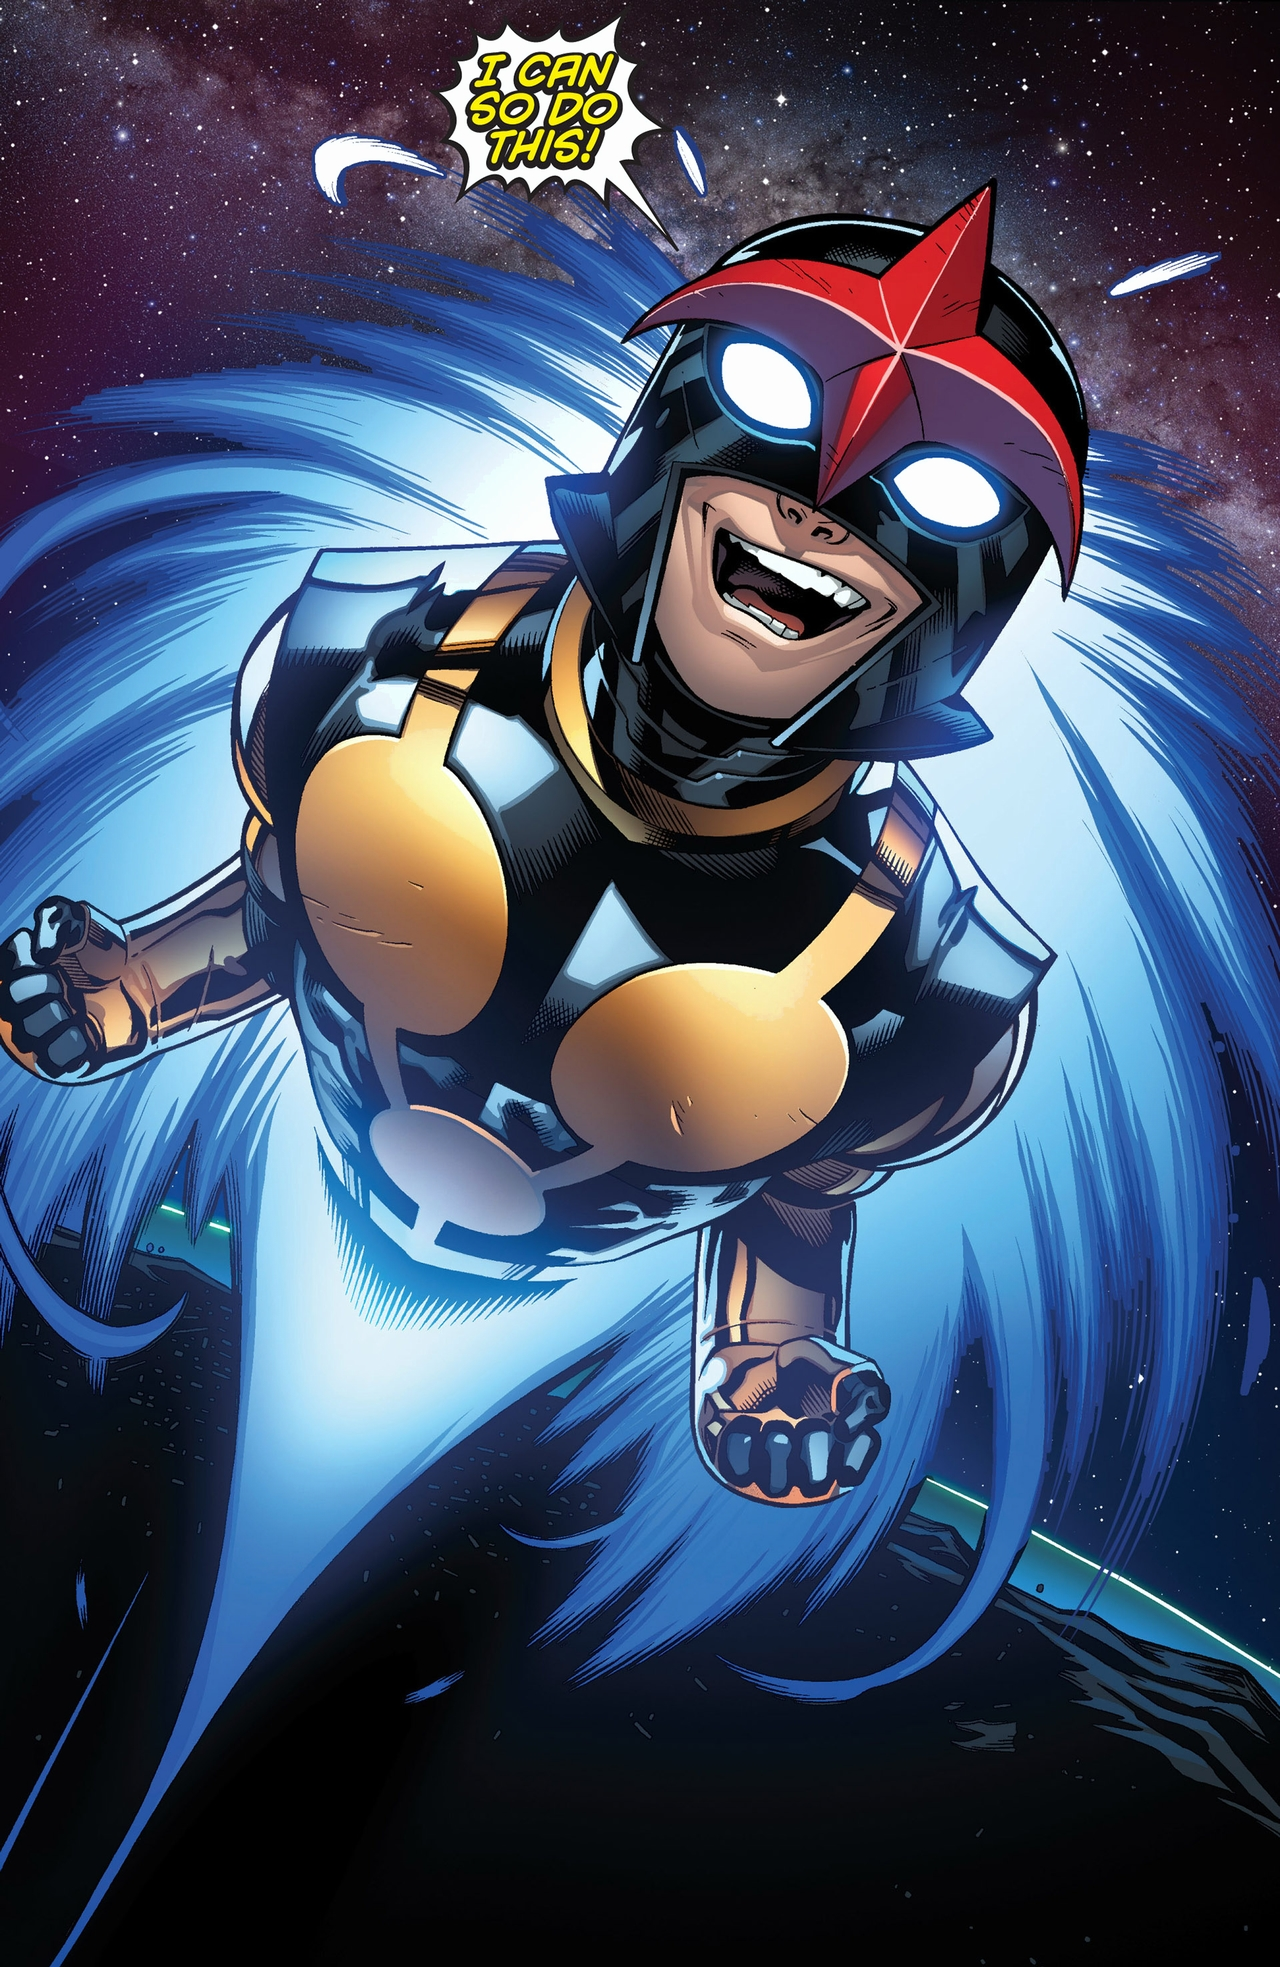 Latinx Superheroes: Sam Alexander as Nova in the Marvel Universe.